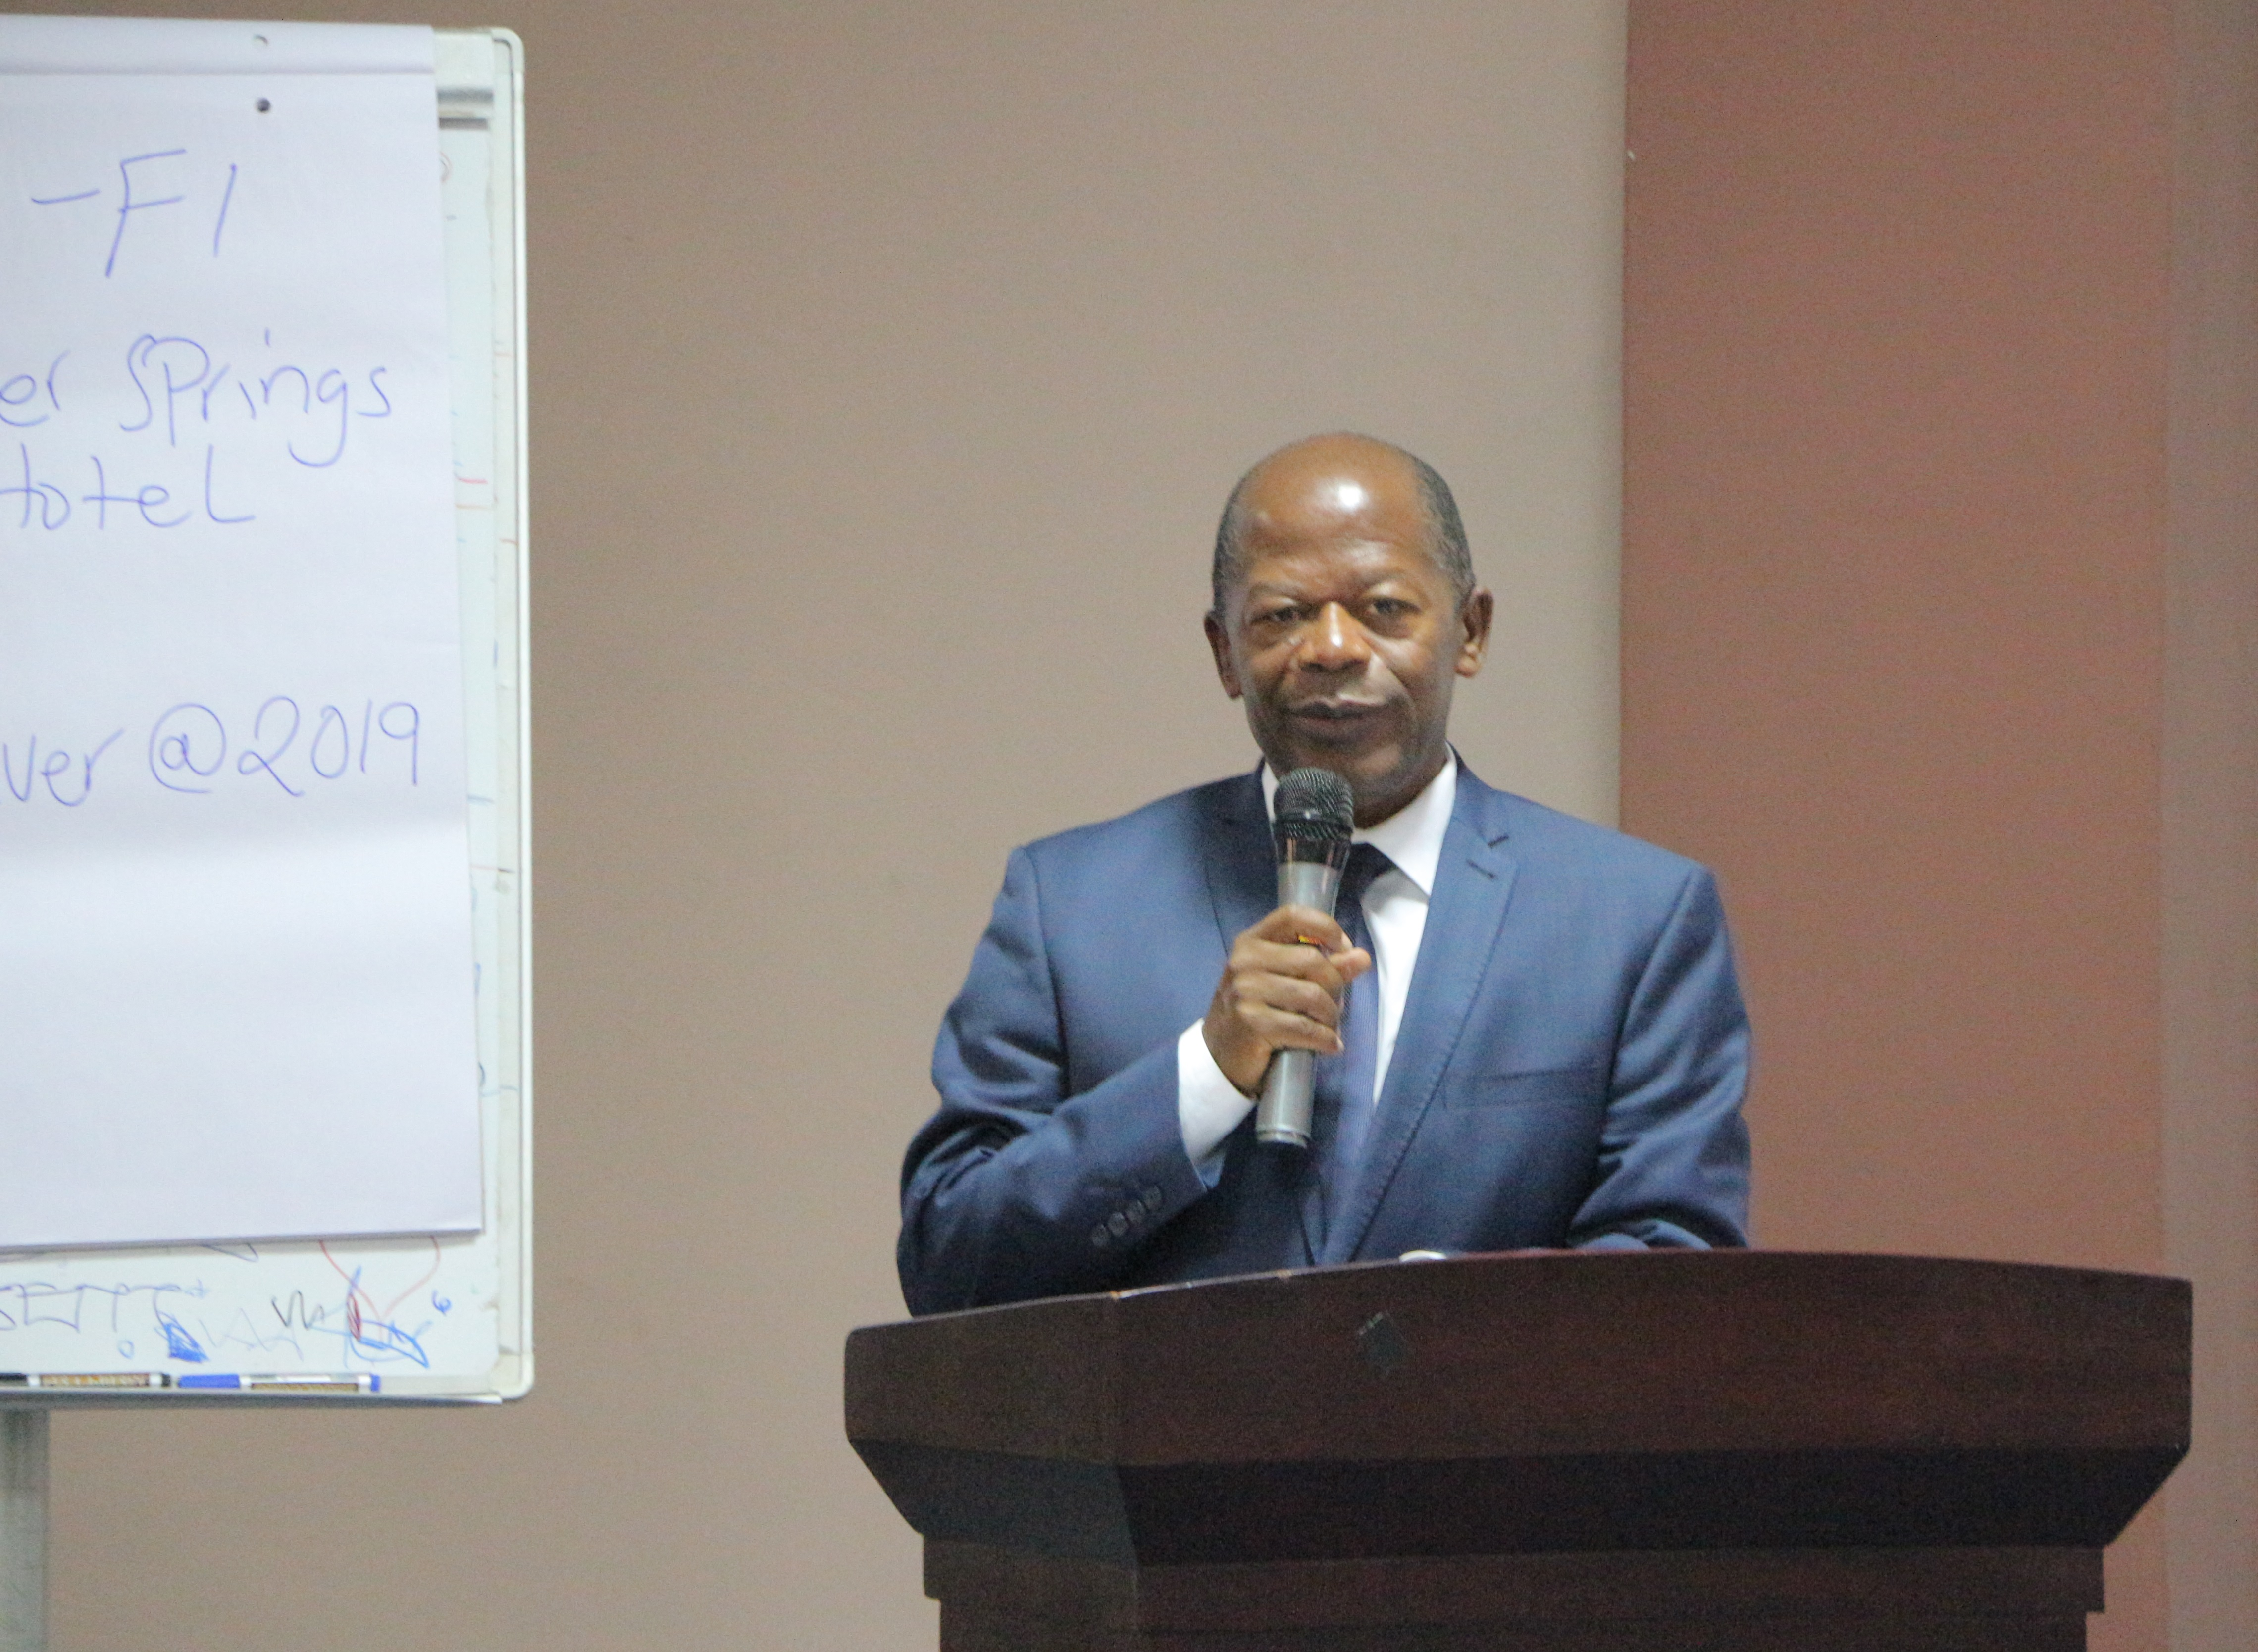 Hon. J.C Muyingo Officiating during the SP Launch